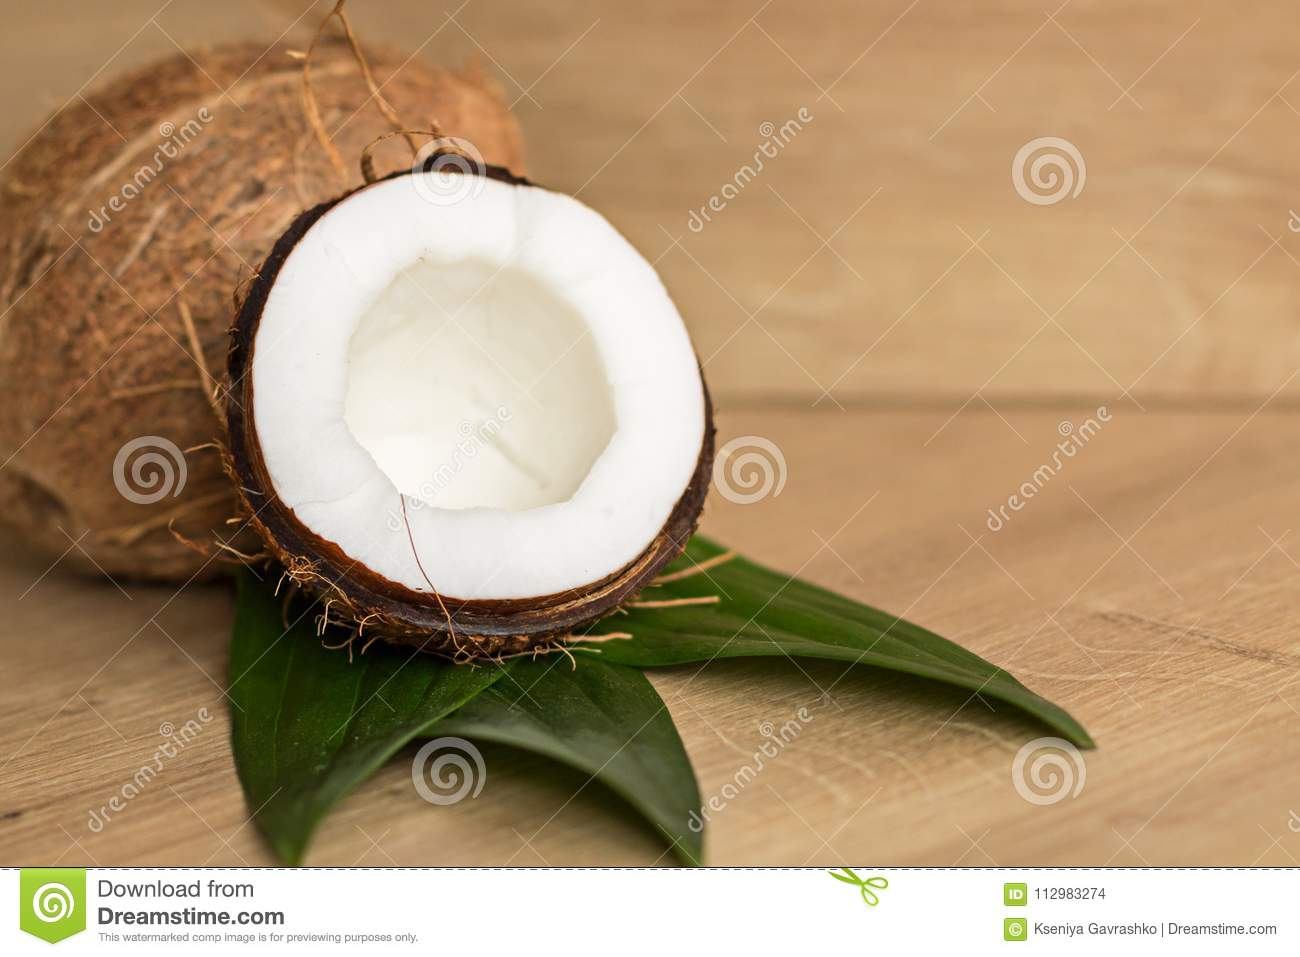 Whole and Broken Coconuts on a Brown Background